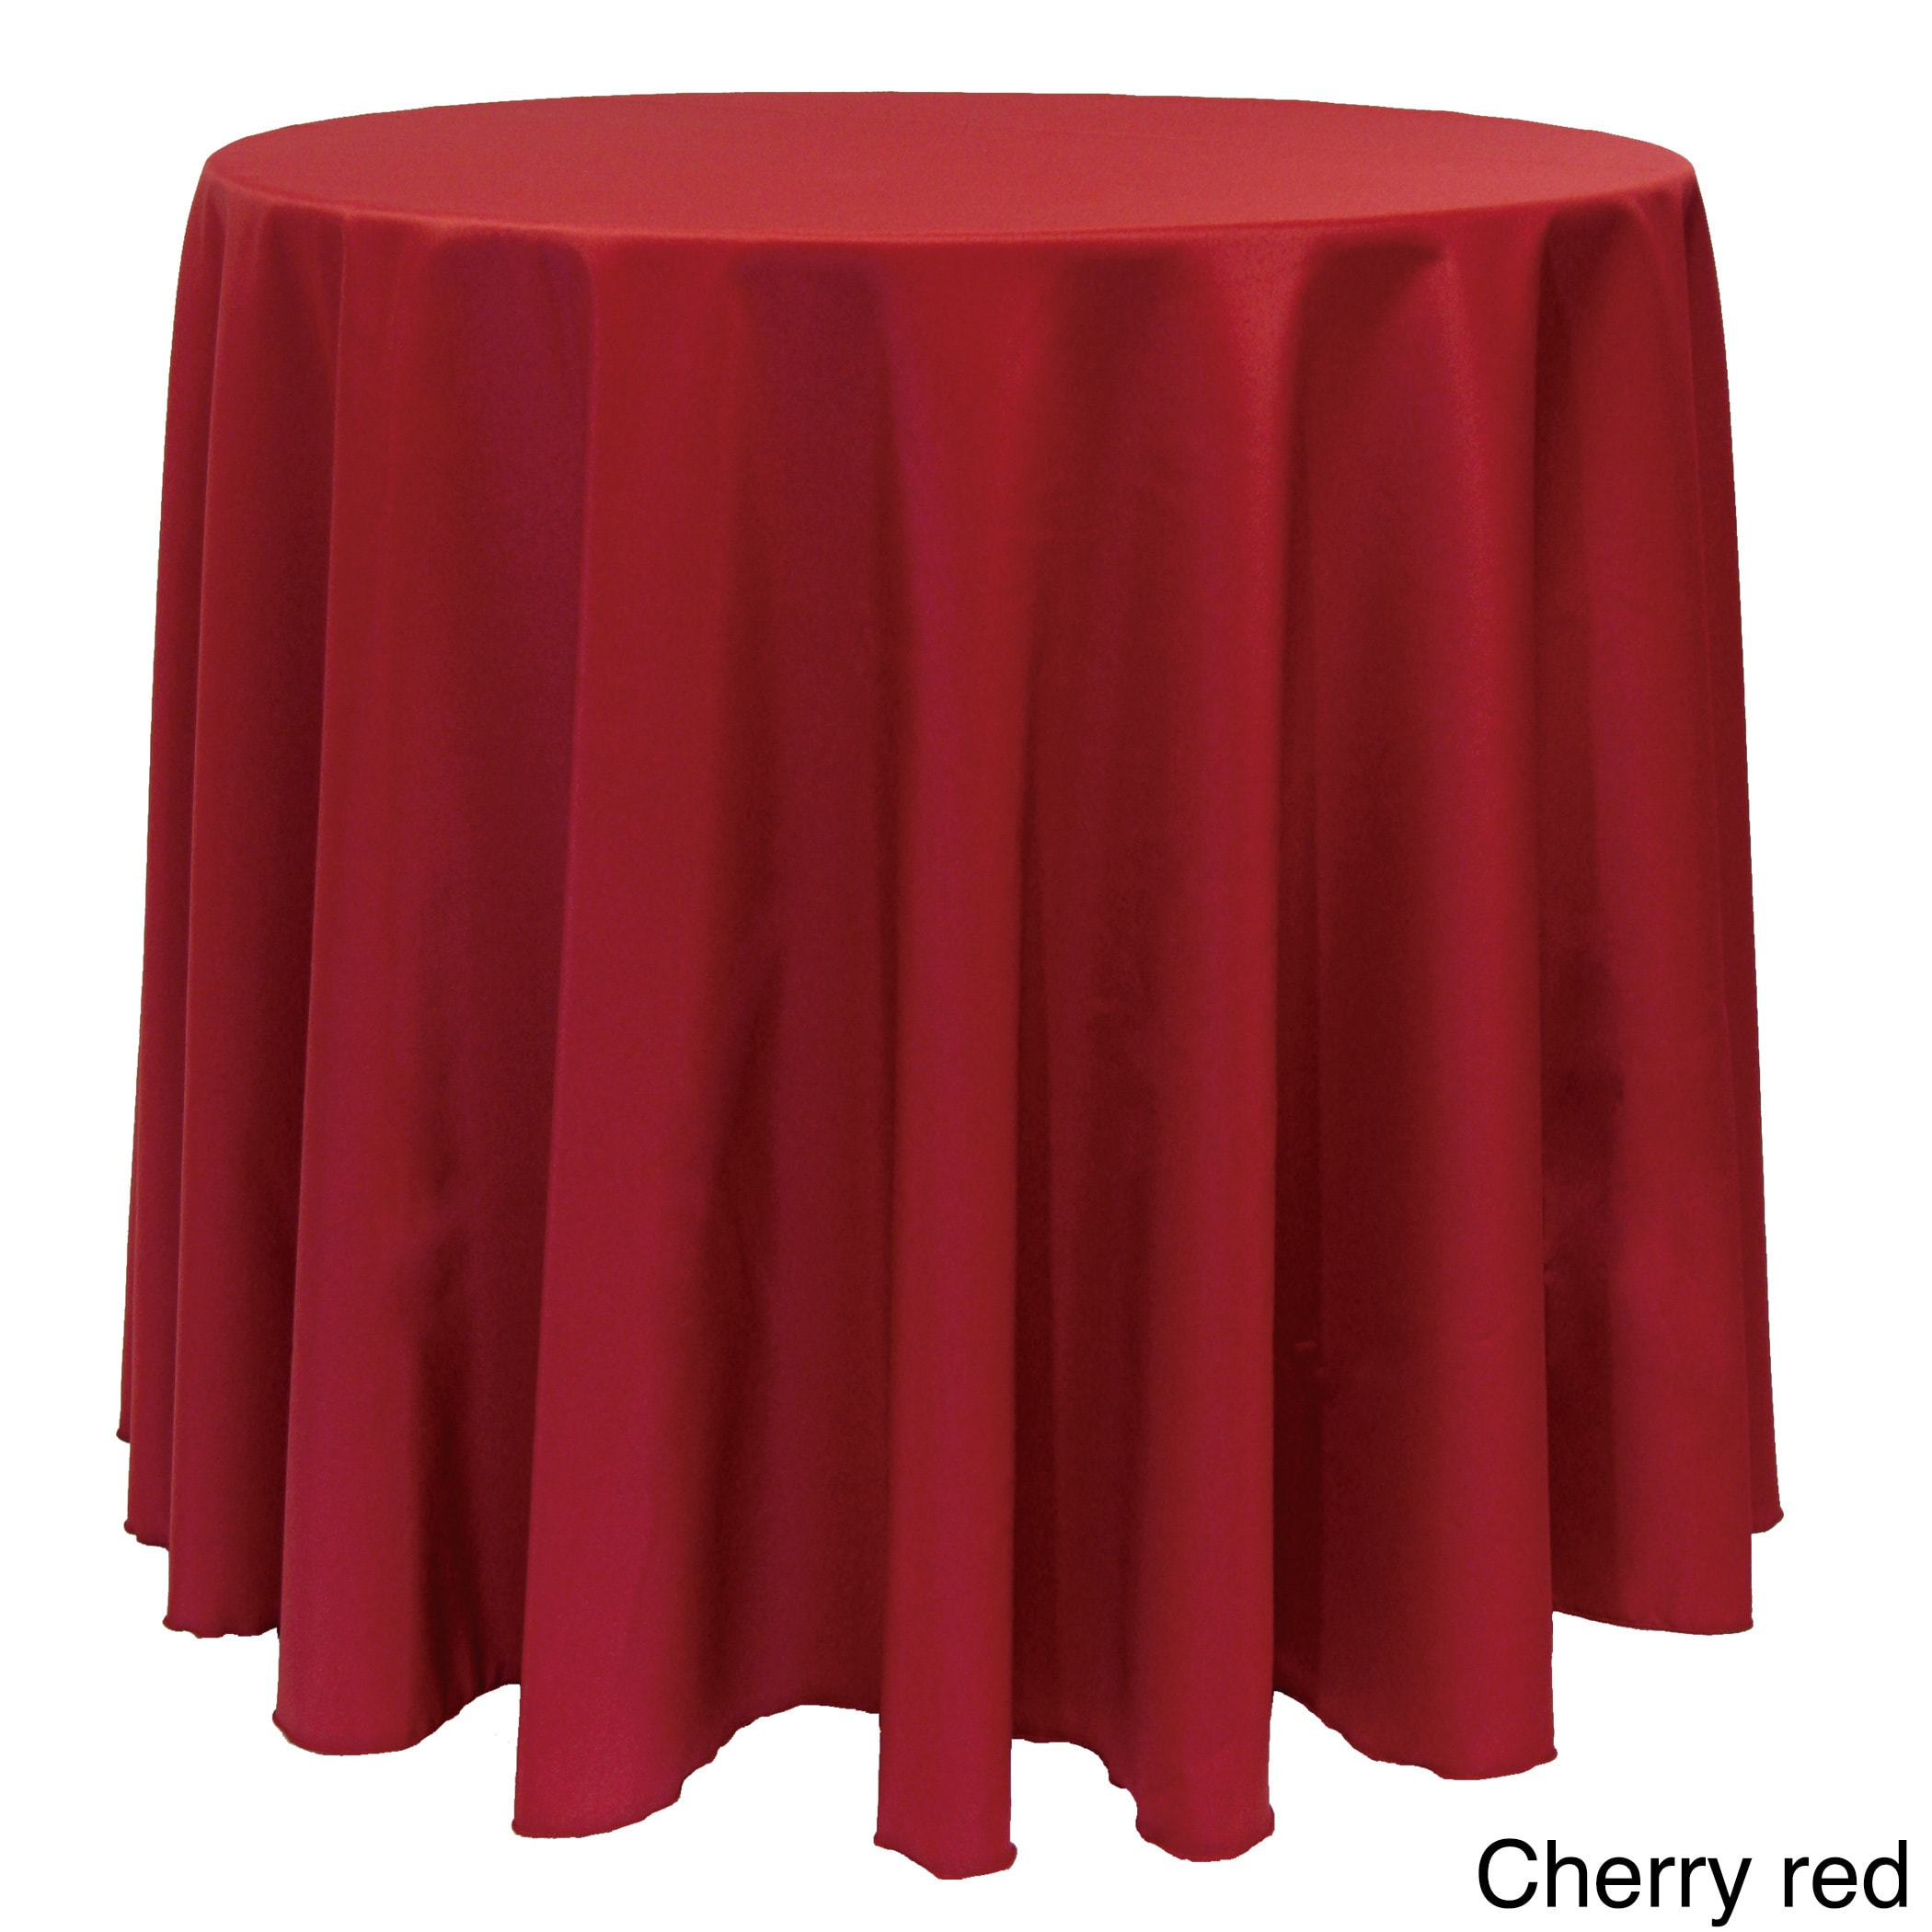 Solid Color 90 Inch Round Tablecloth